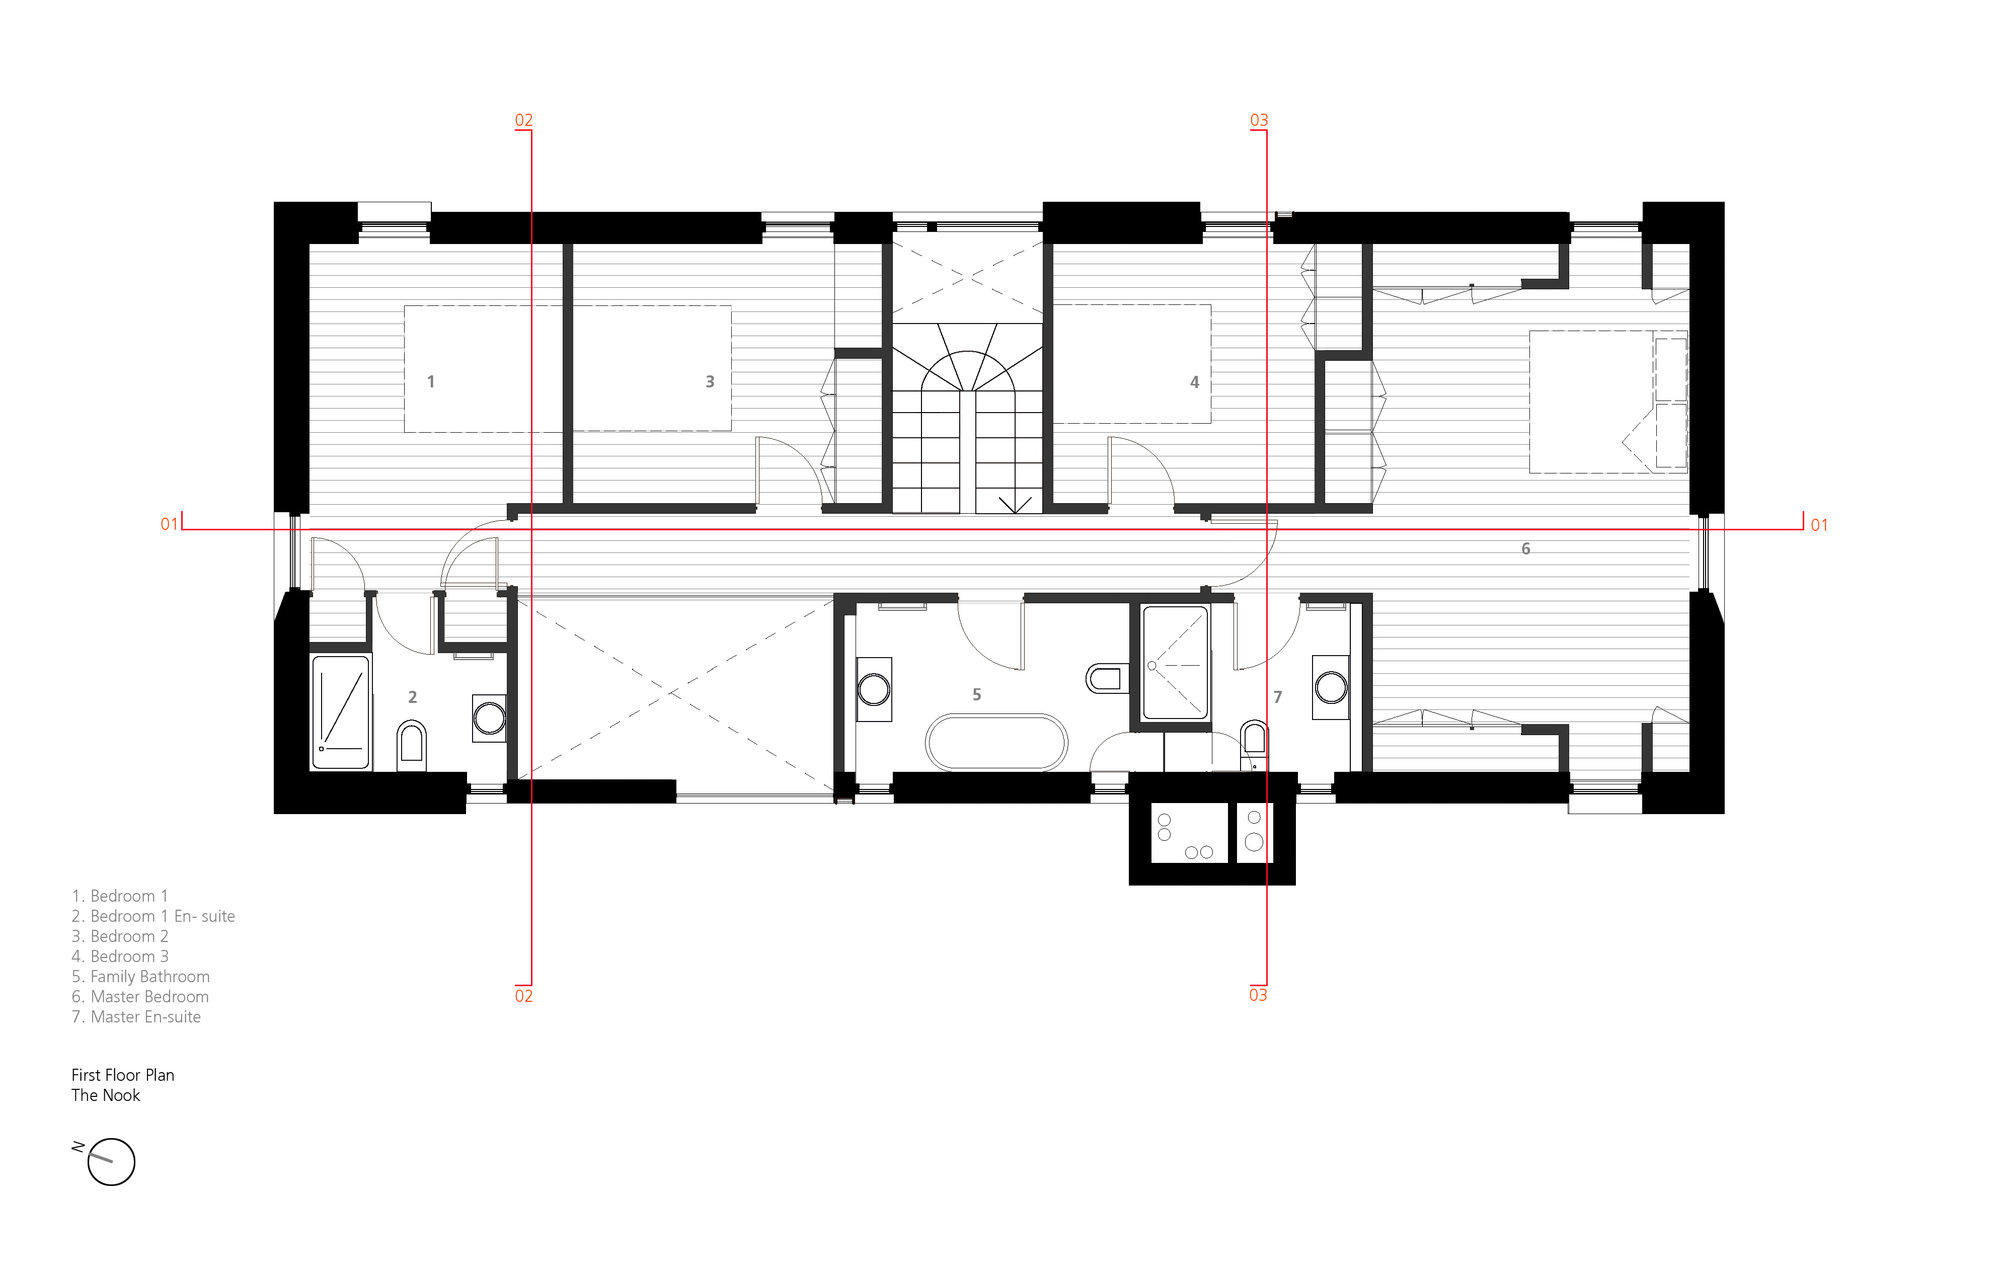 Gallery of the nook hall bednarczyk 15 for L architecture moderne plan